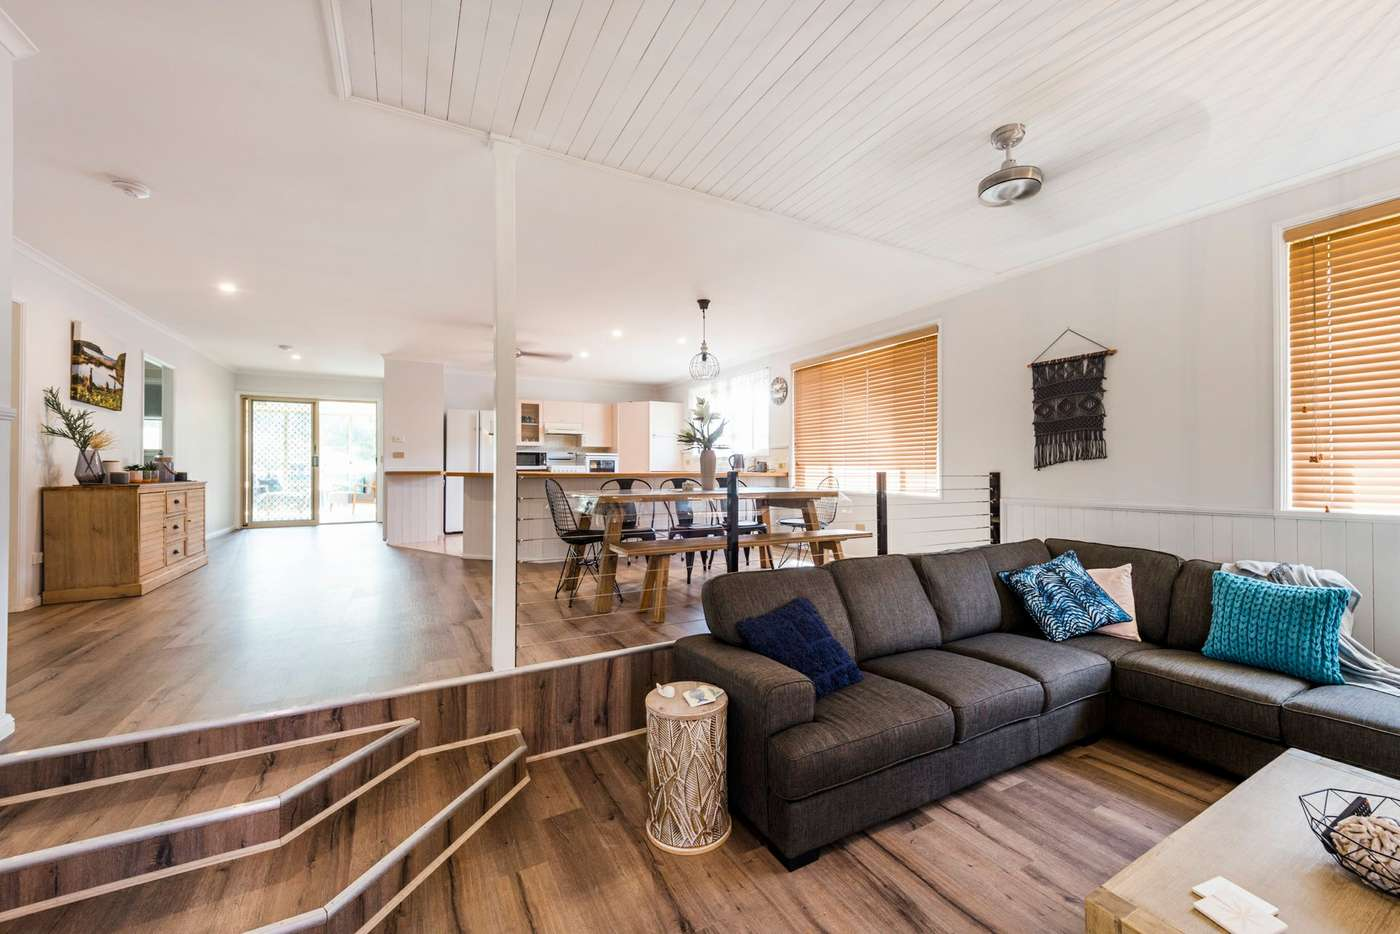 Main view of Homely house listing, 31 Melville Street, Iluka NSW 2466